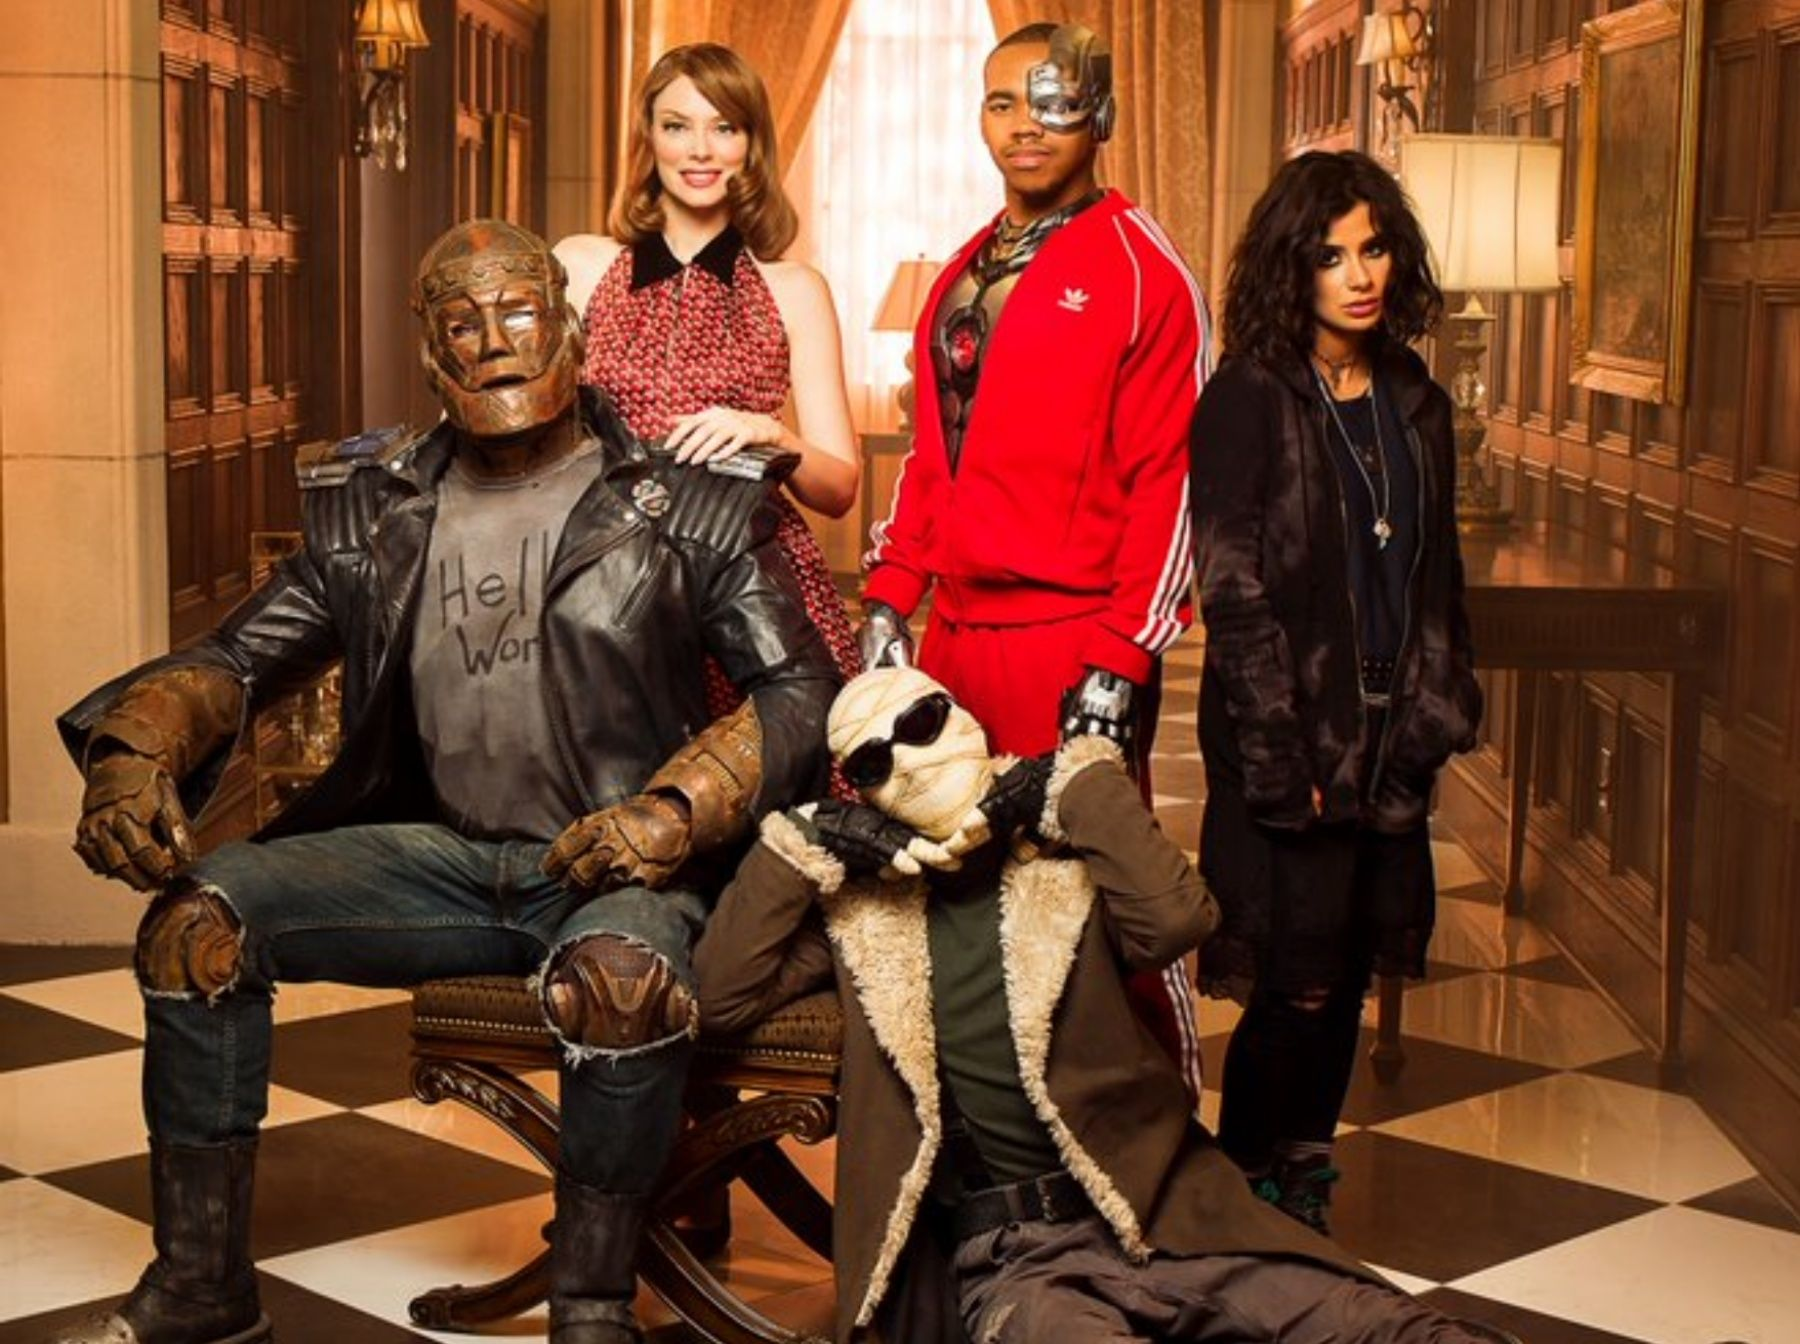 Doom Patrol Showrunner On Getting Away With Wild Season 2 Collider